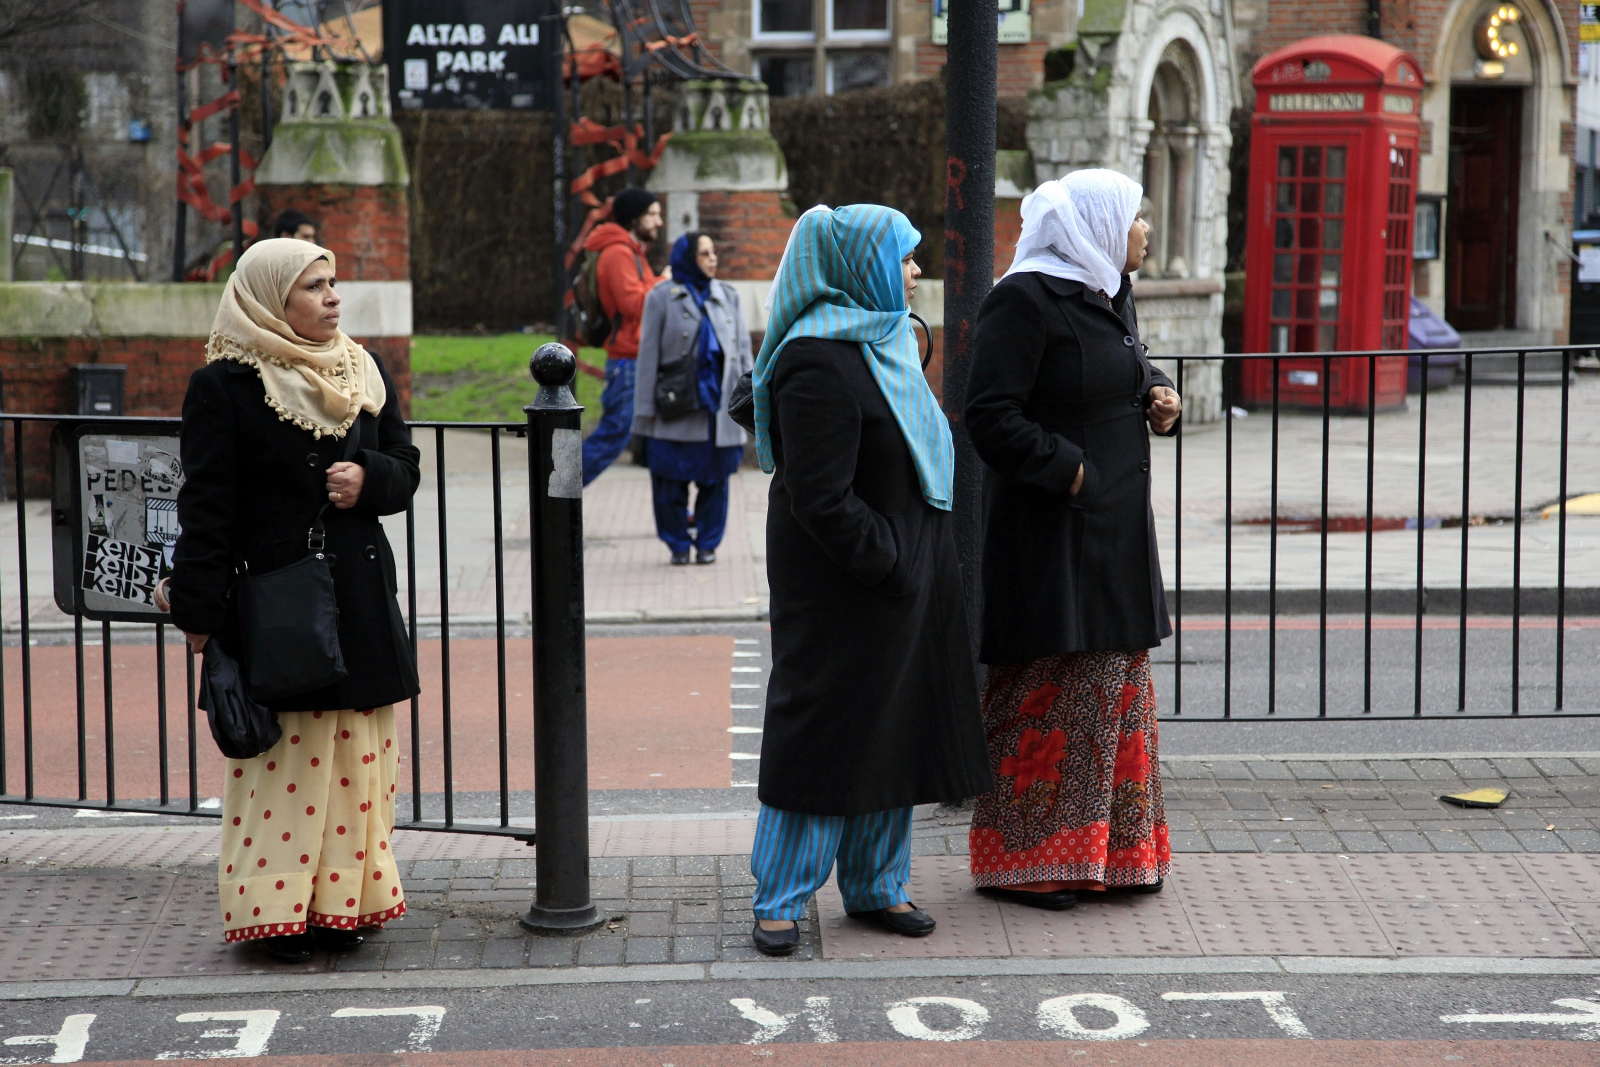 Muslim women wearing heqadscarves